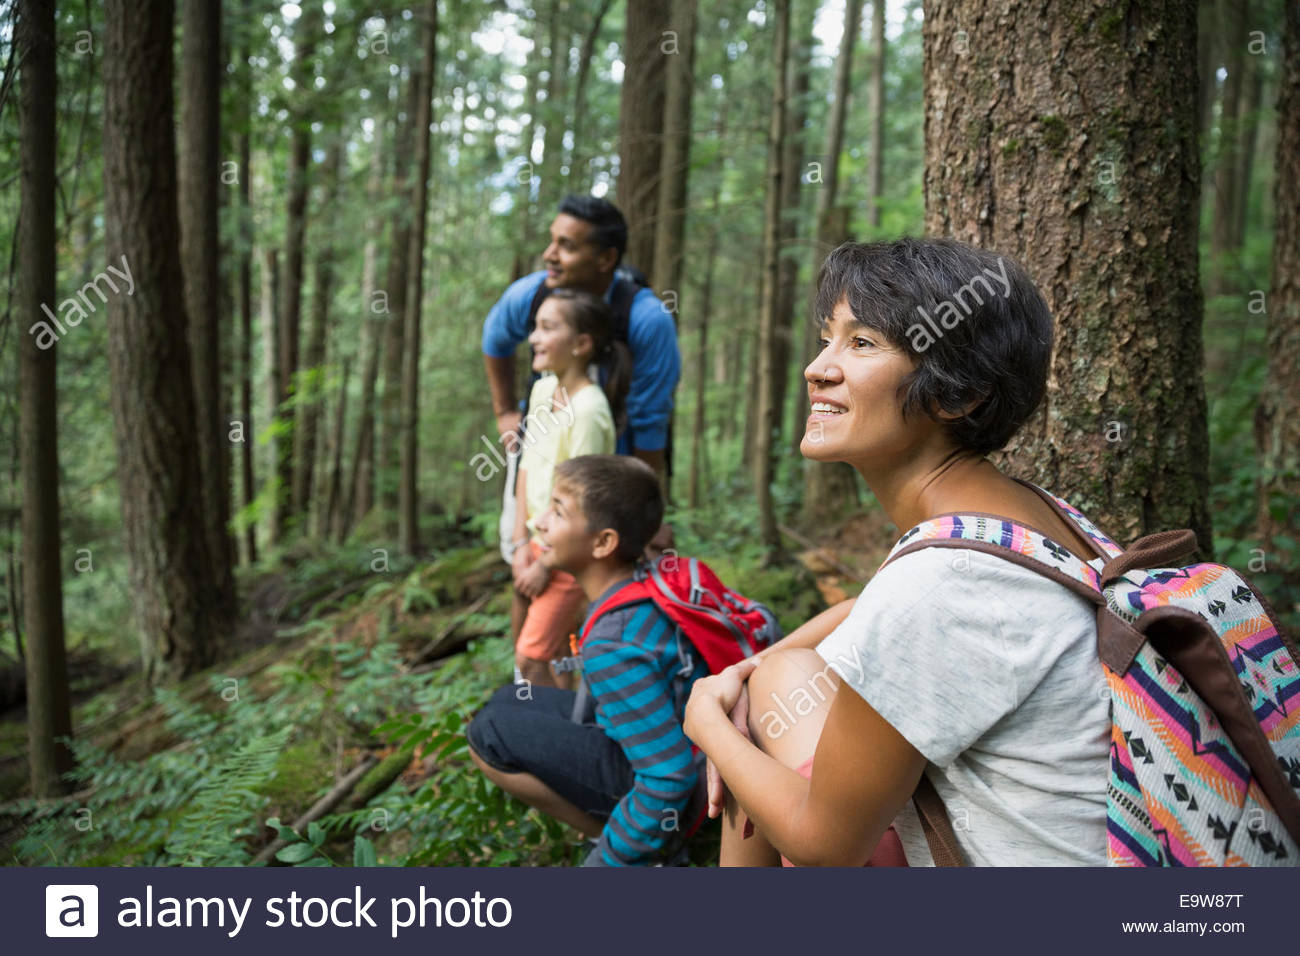 Family smiling in woods - Stock Image